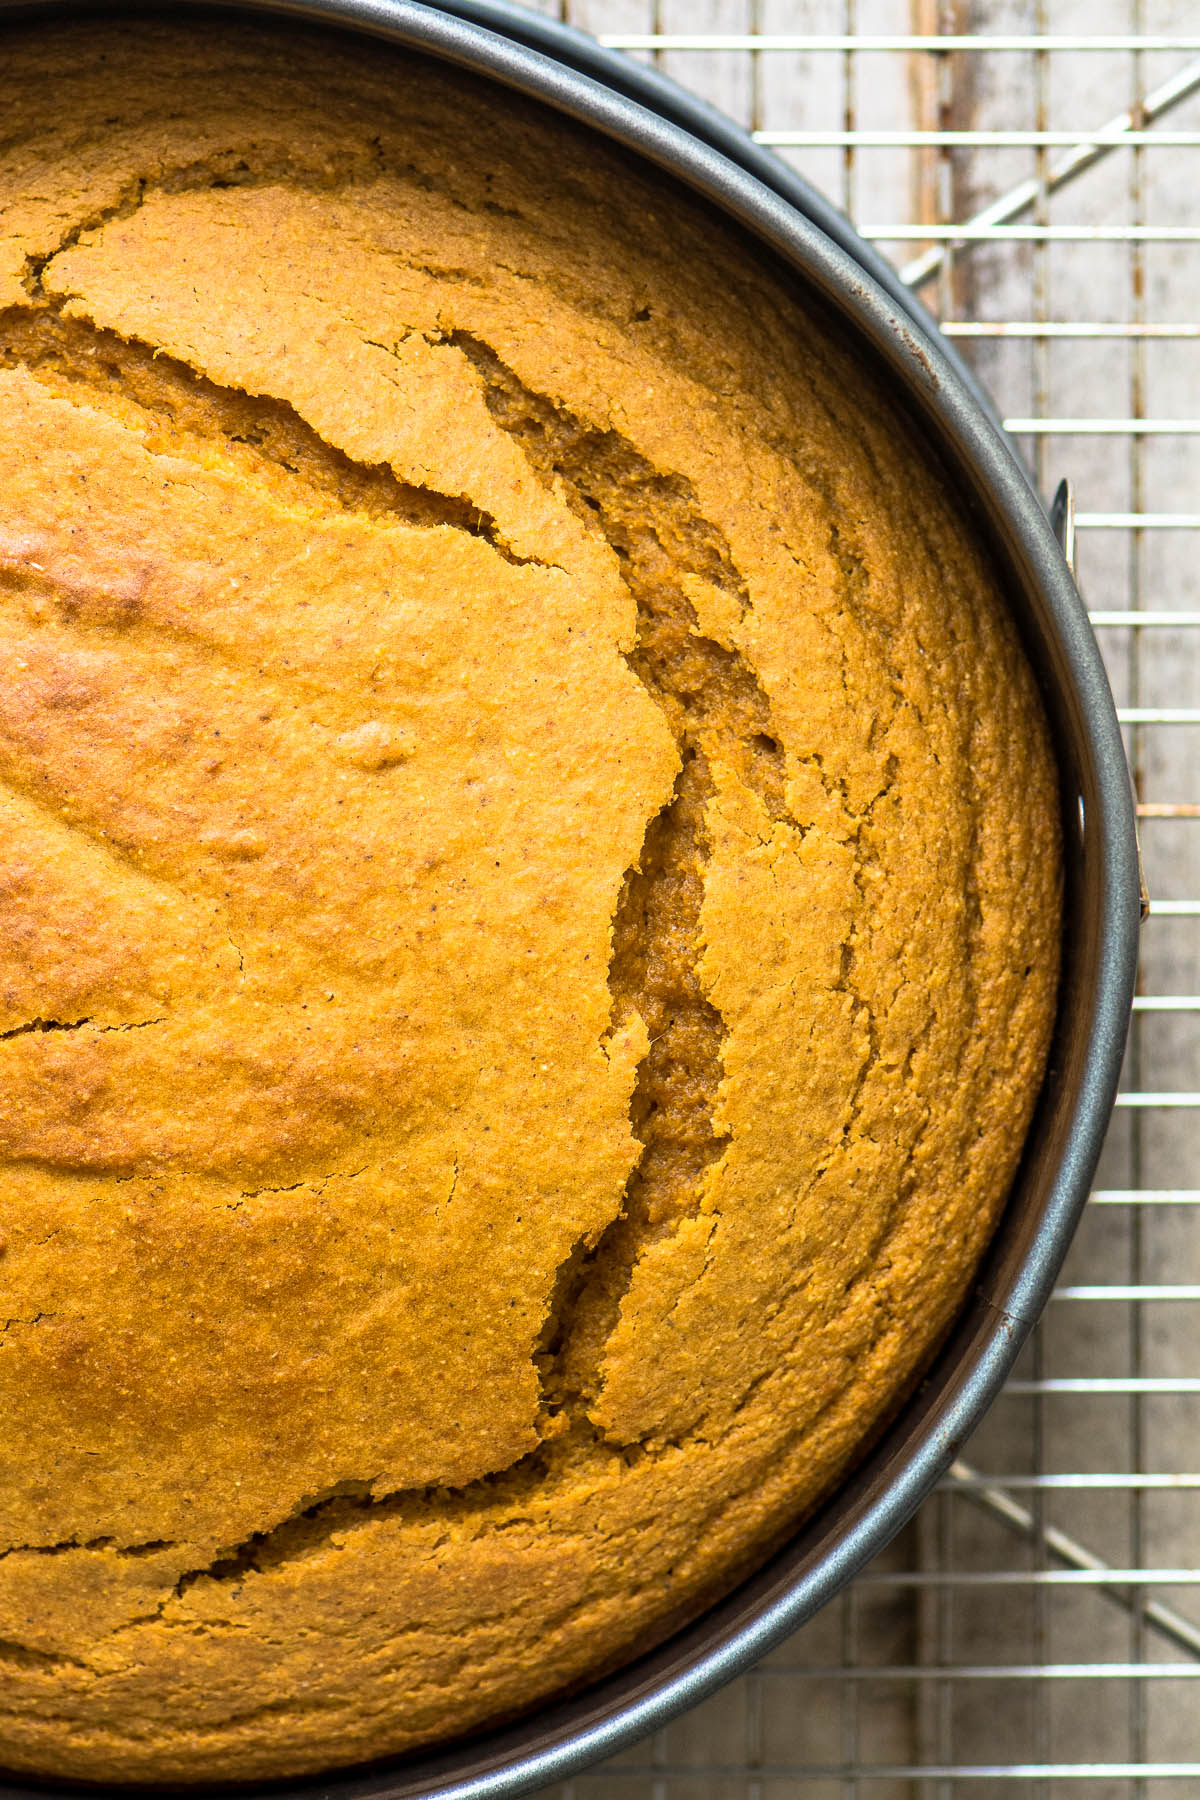 Pumpkin Cornbread just out of the oven, on a cooling rack